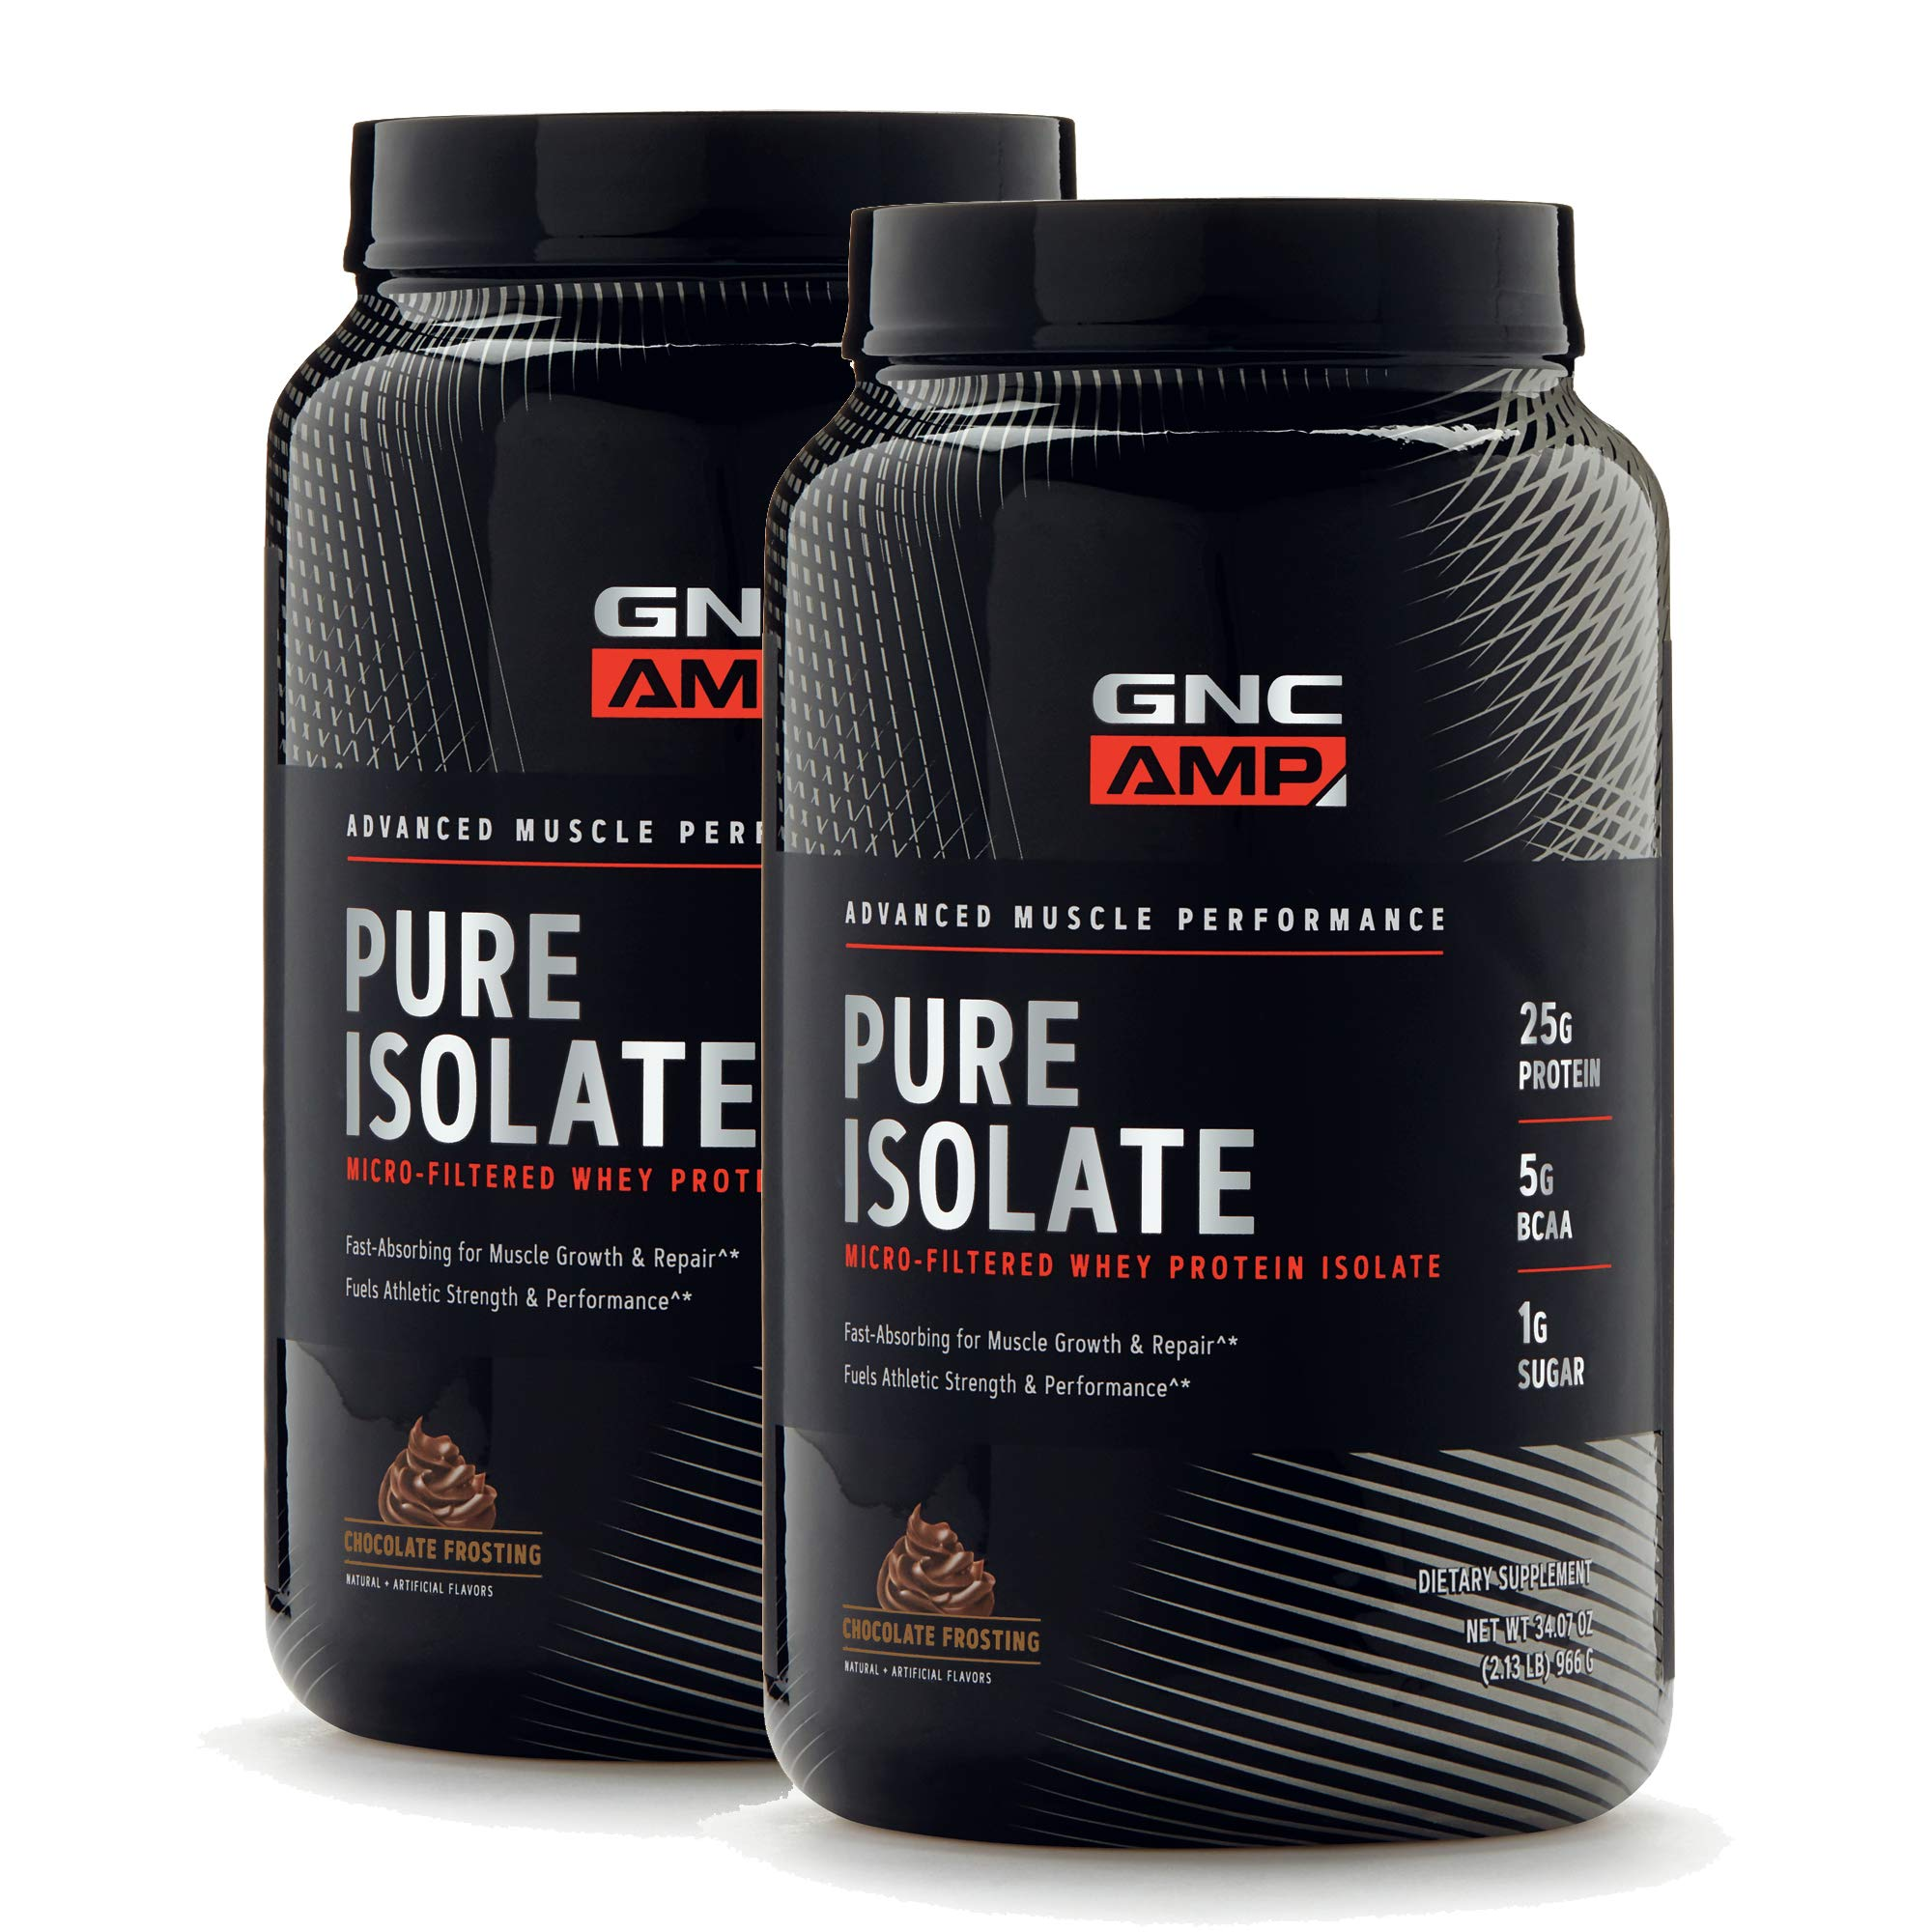 GNC AMP Pure Isolate - Chocolate Frosting - Twin Pack by GNC